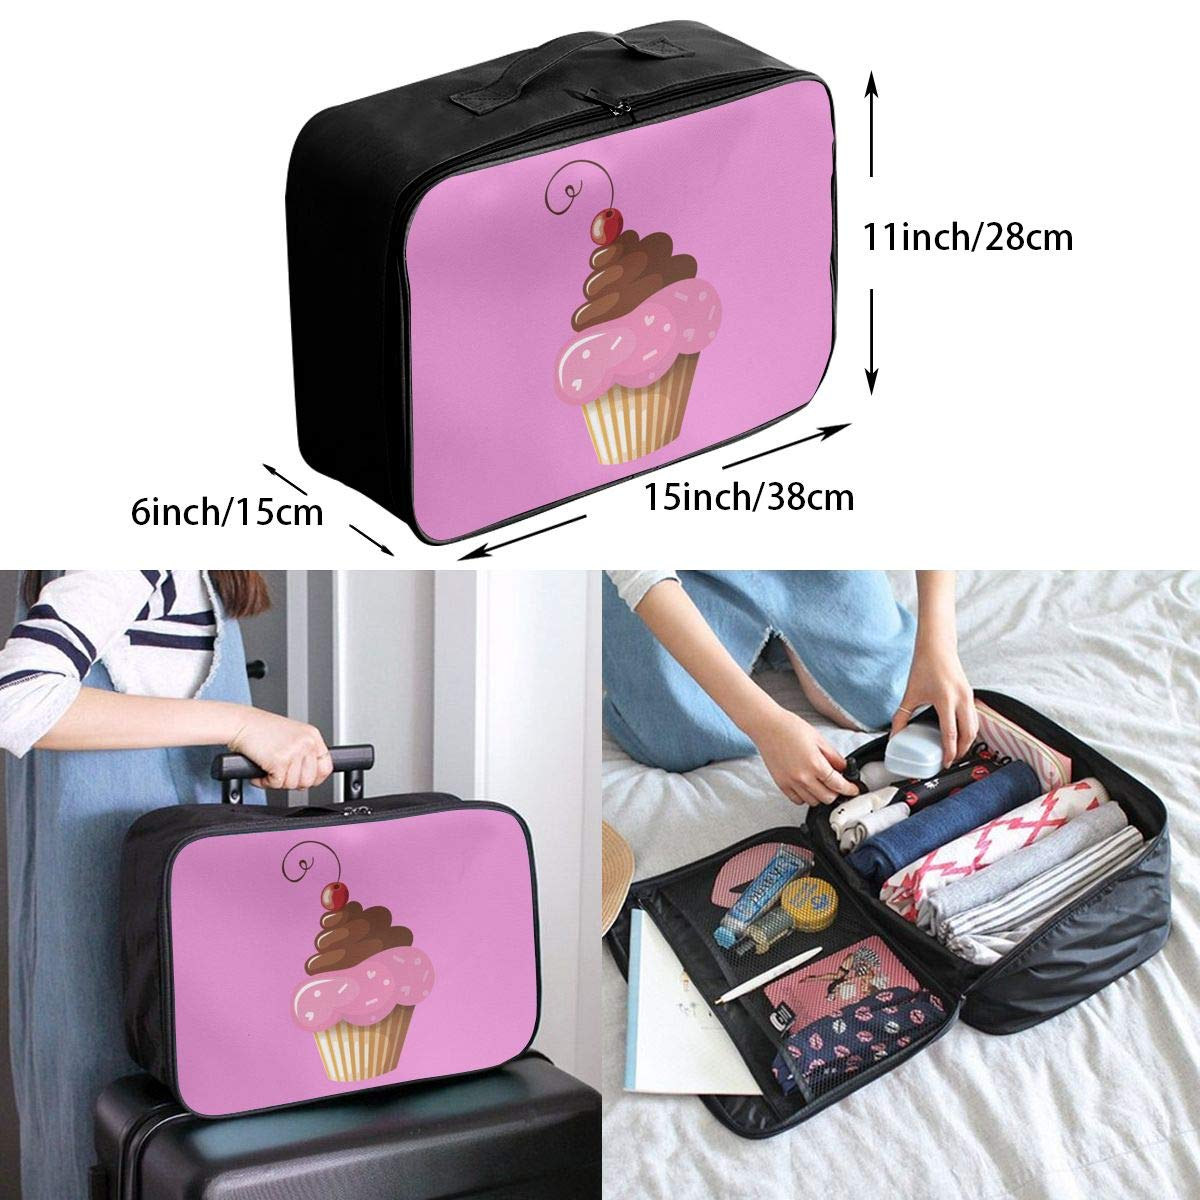 Travel Luggage Duffle Bag Lightweight Portable Handbag Cake Large Capacity Waterproof Foldable Storage Tote